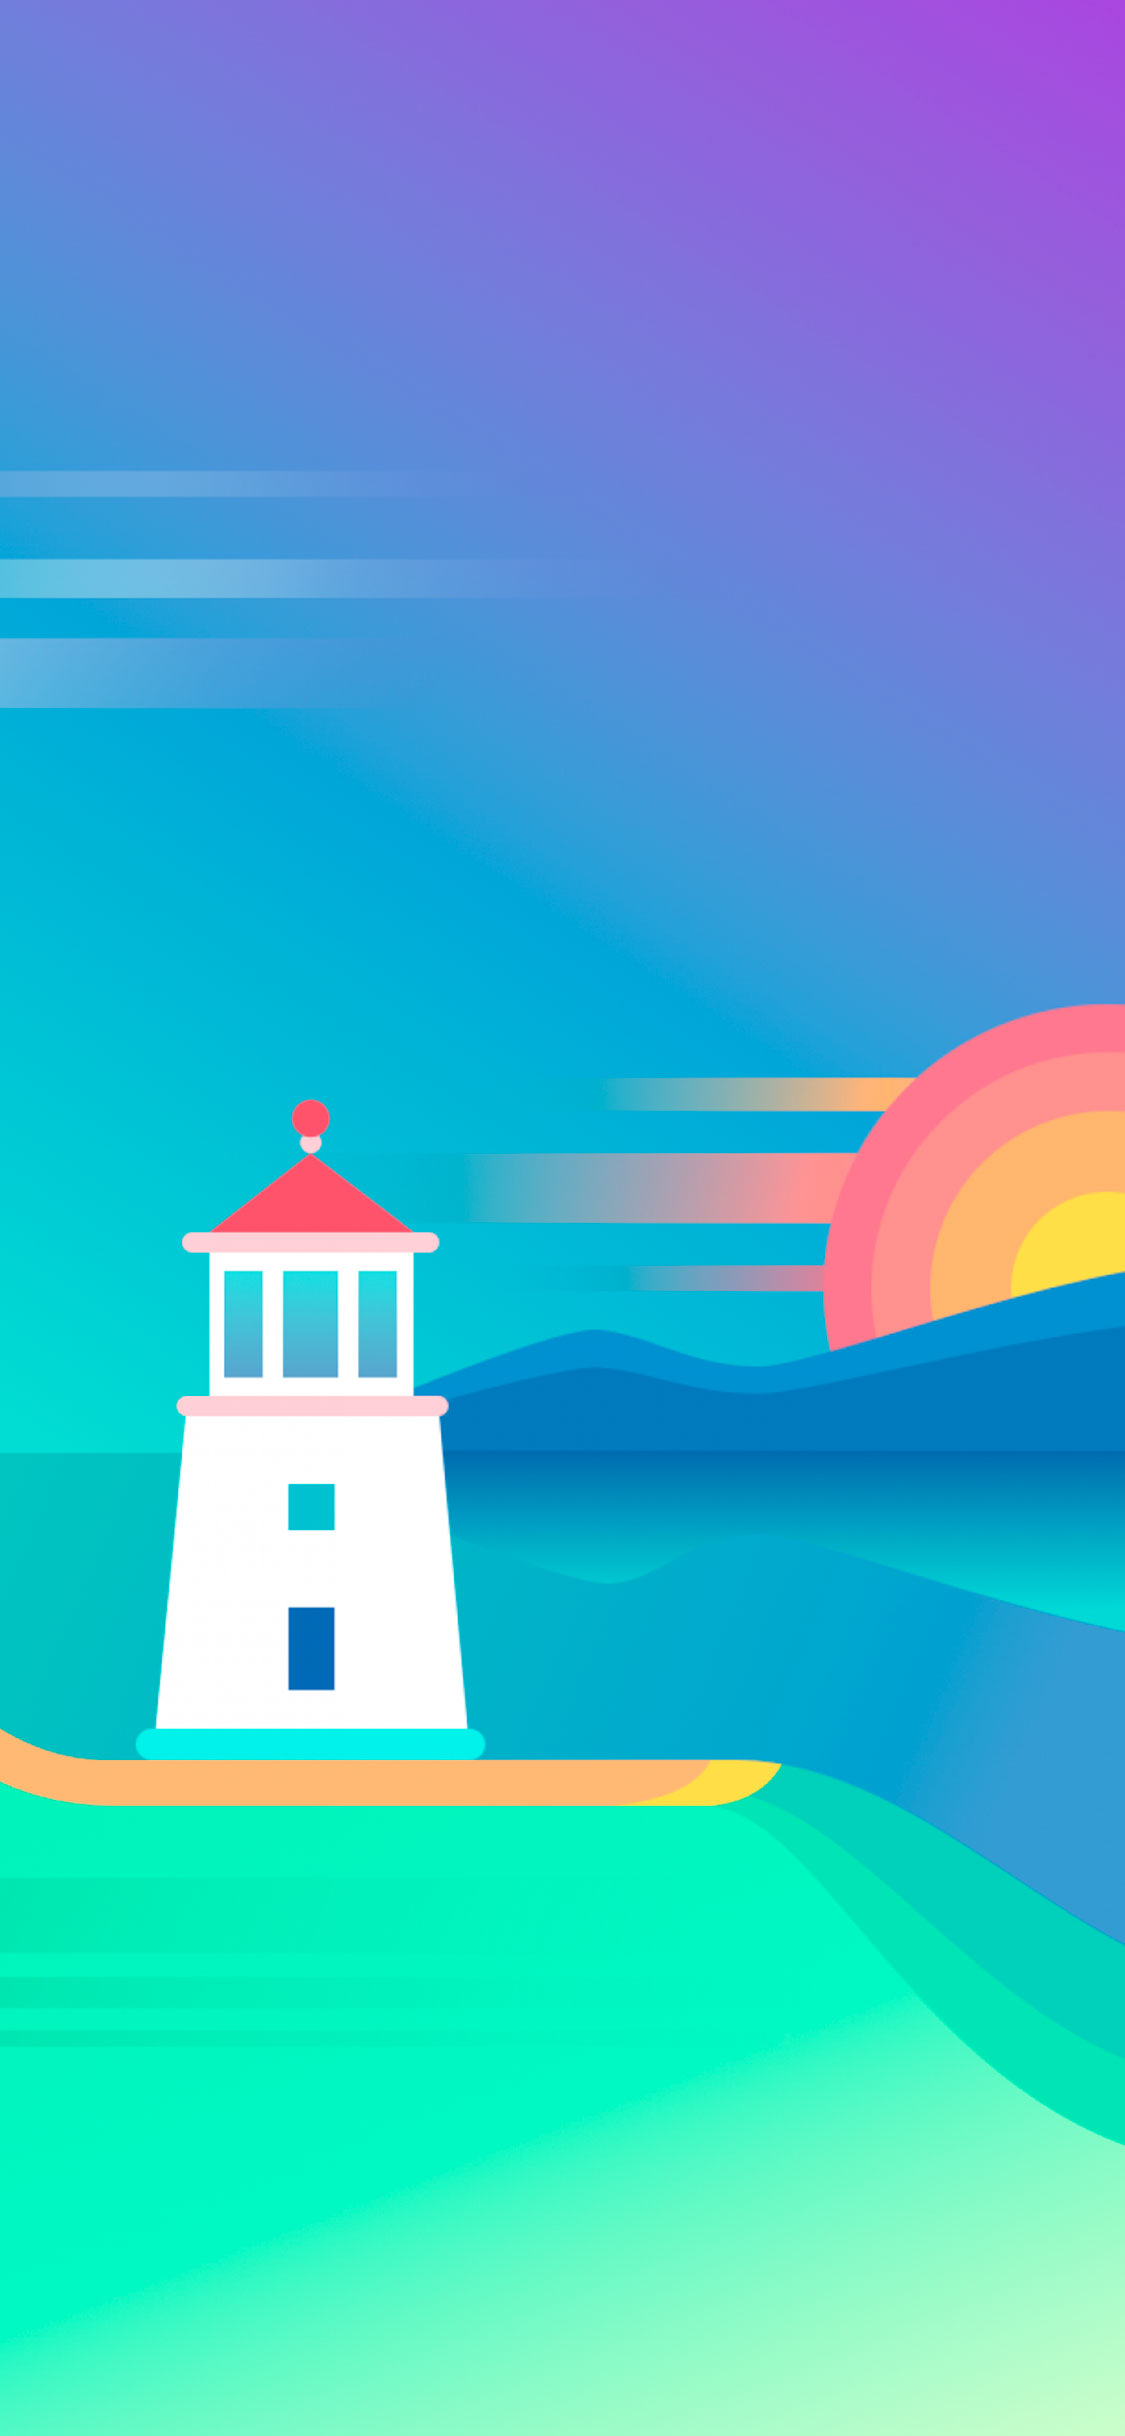 iPhone wallpaper illustration lighthouse Illustration